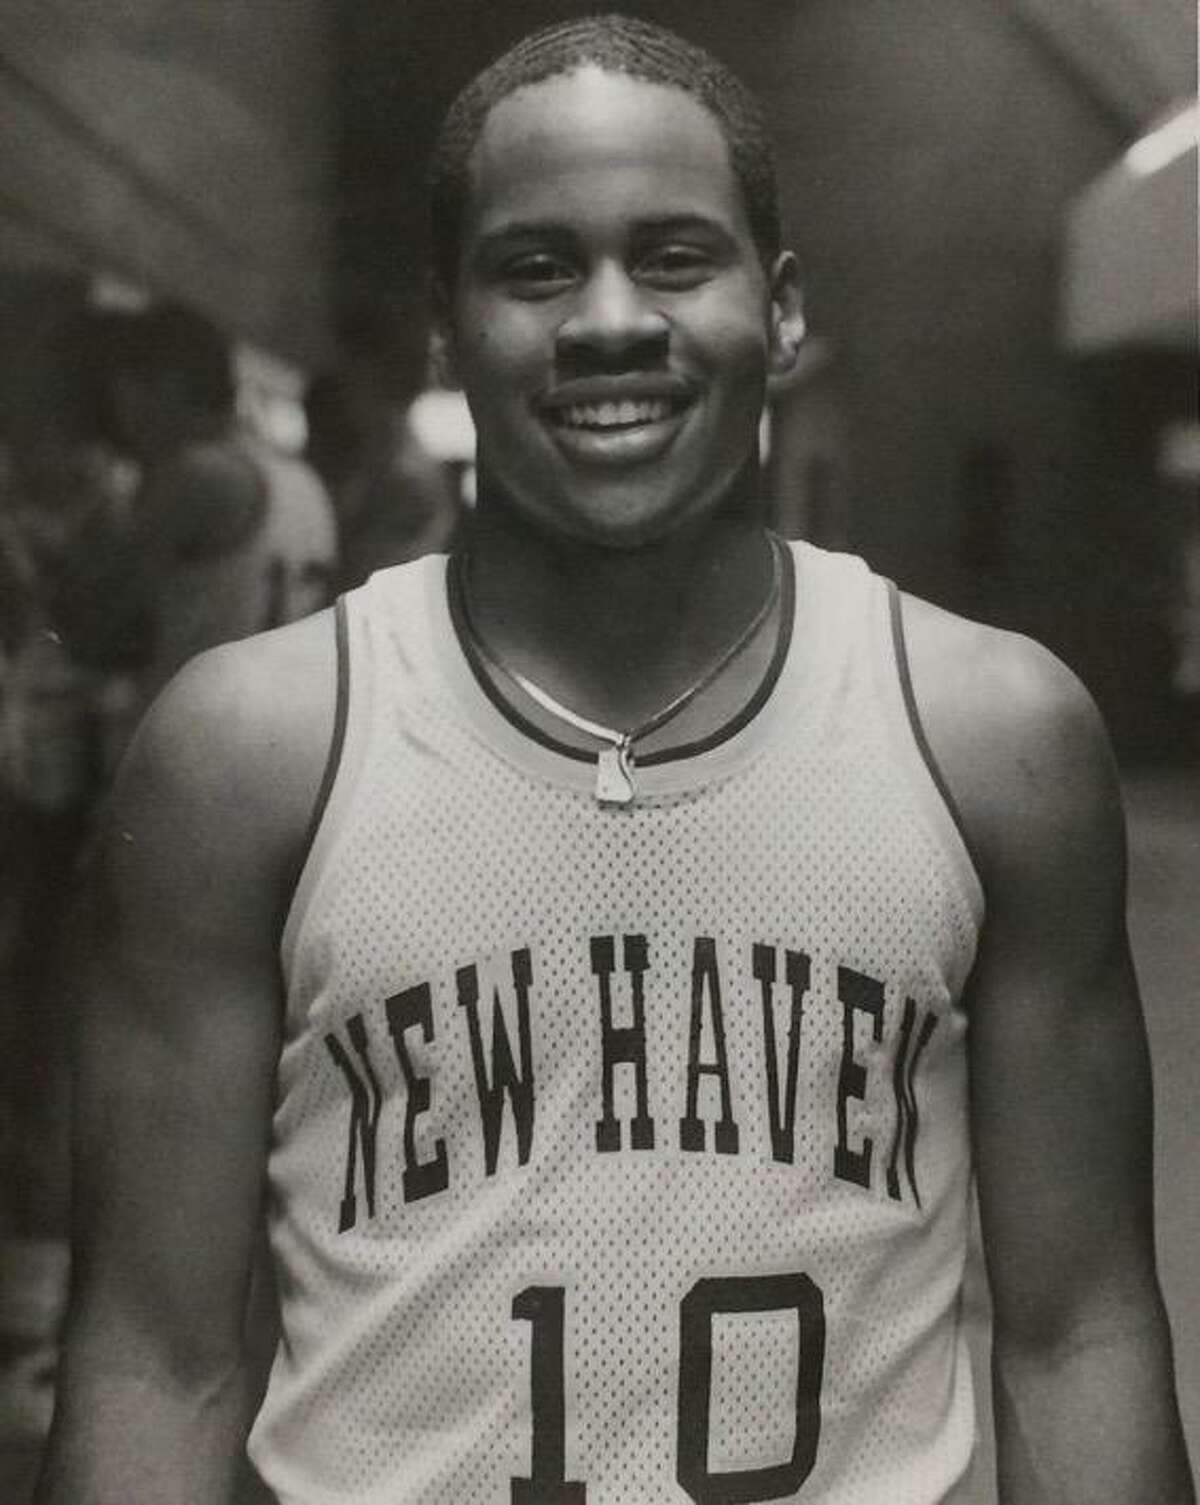 Ken Coleman as member of University of New Haven basketball team.